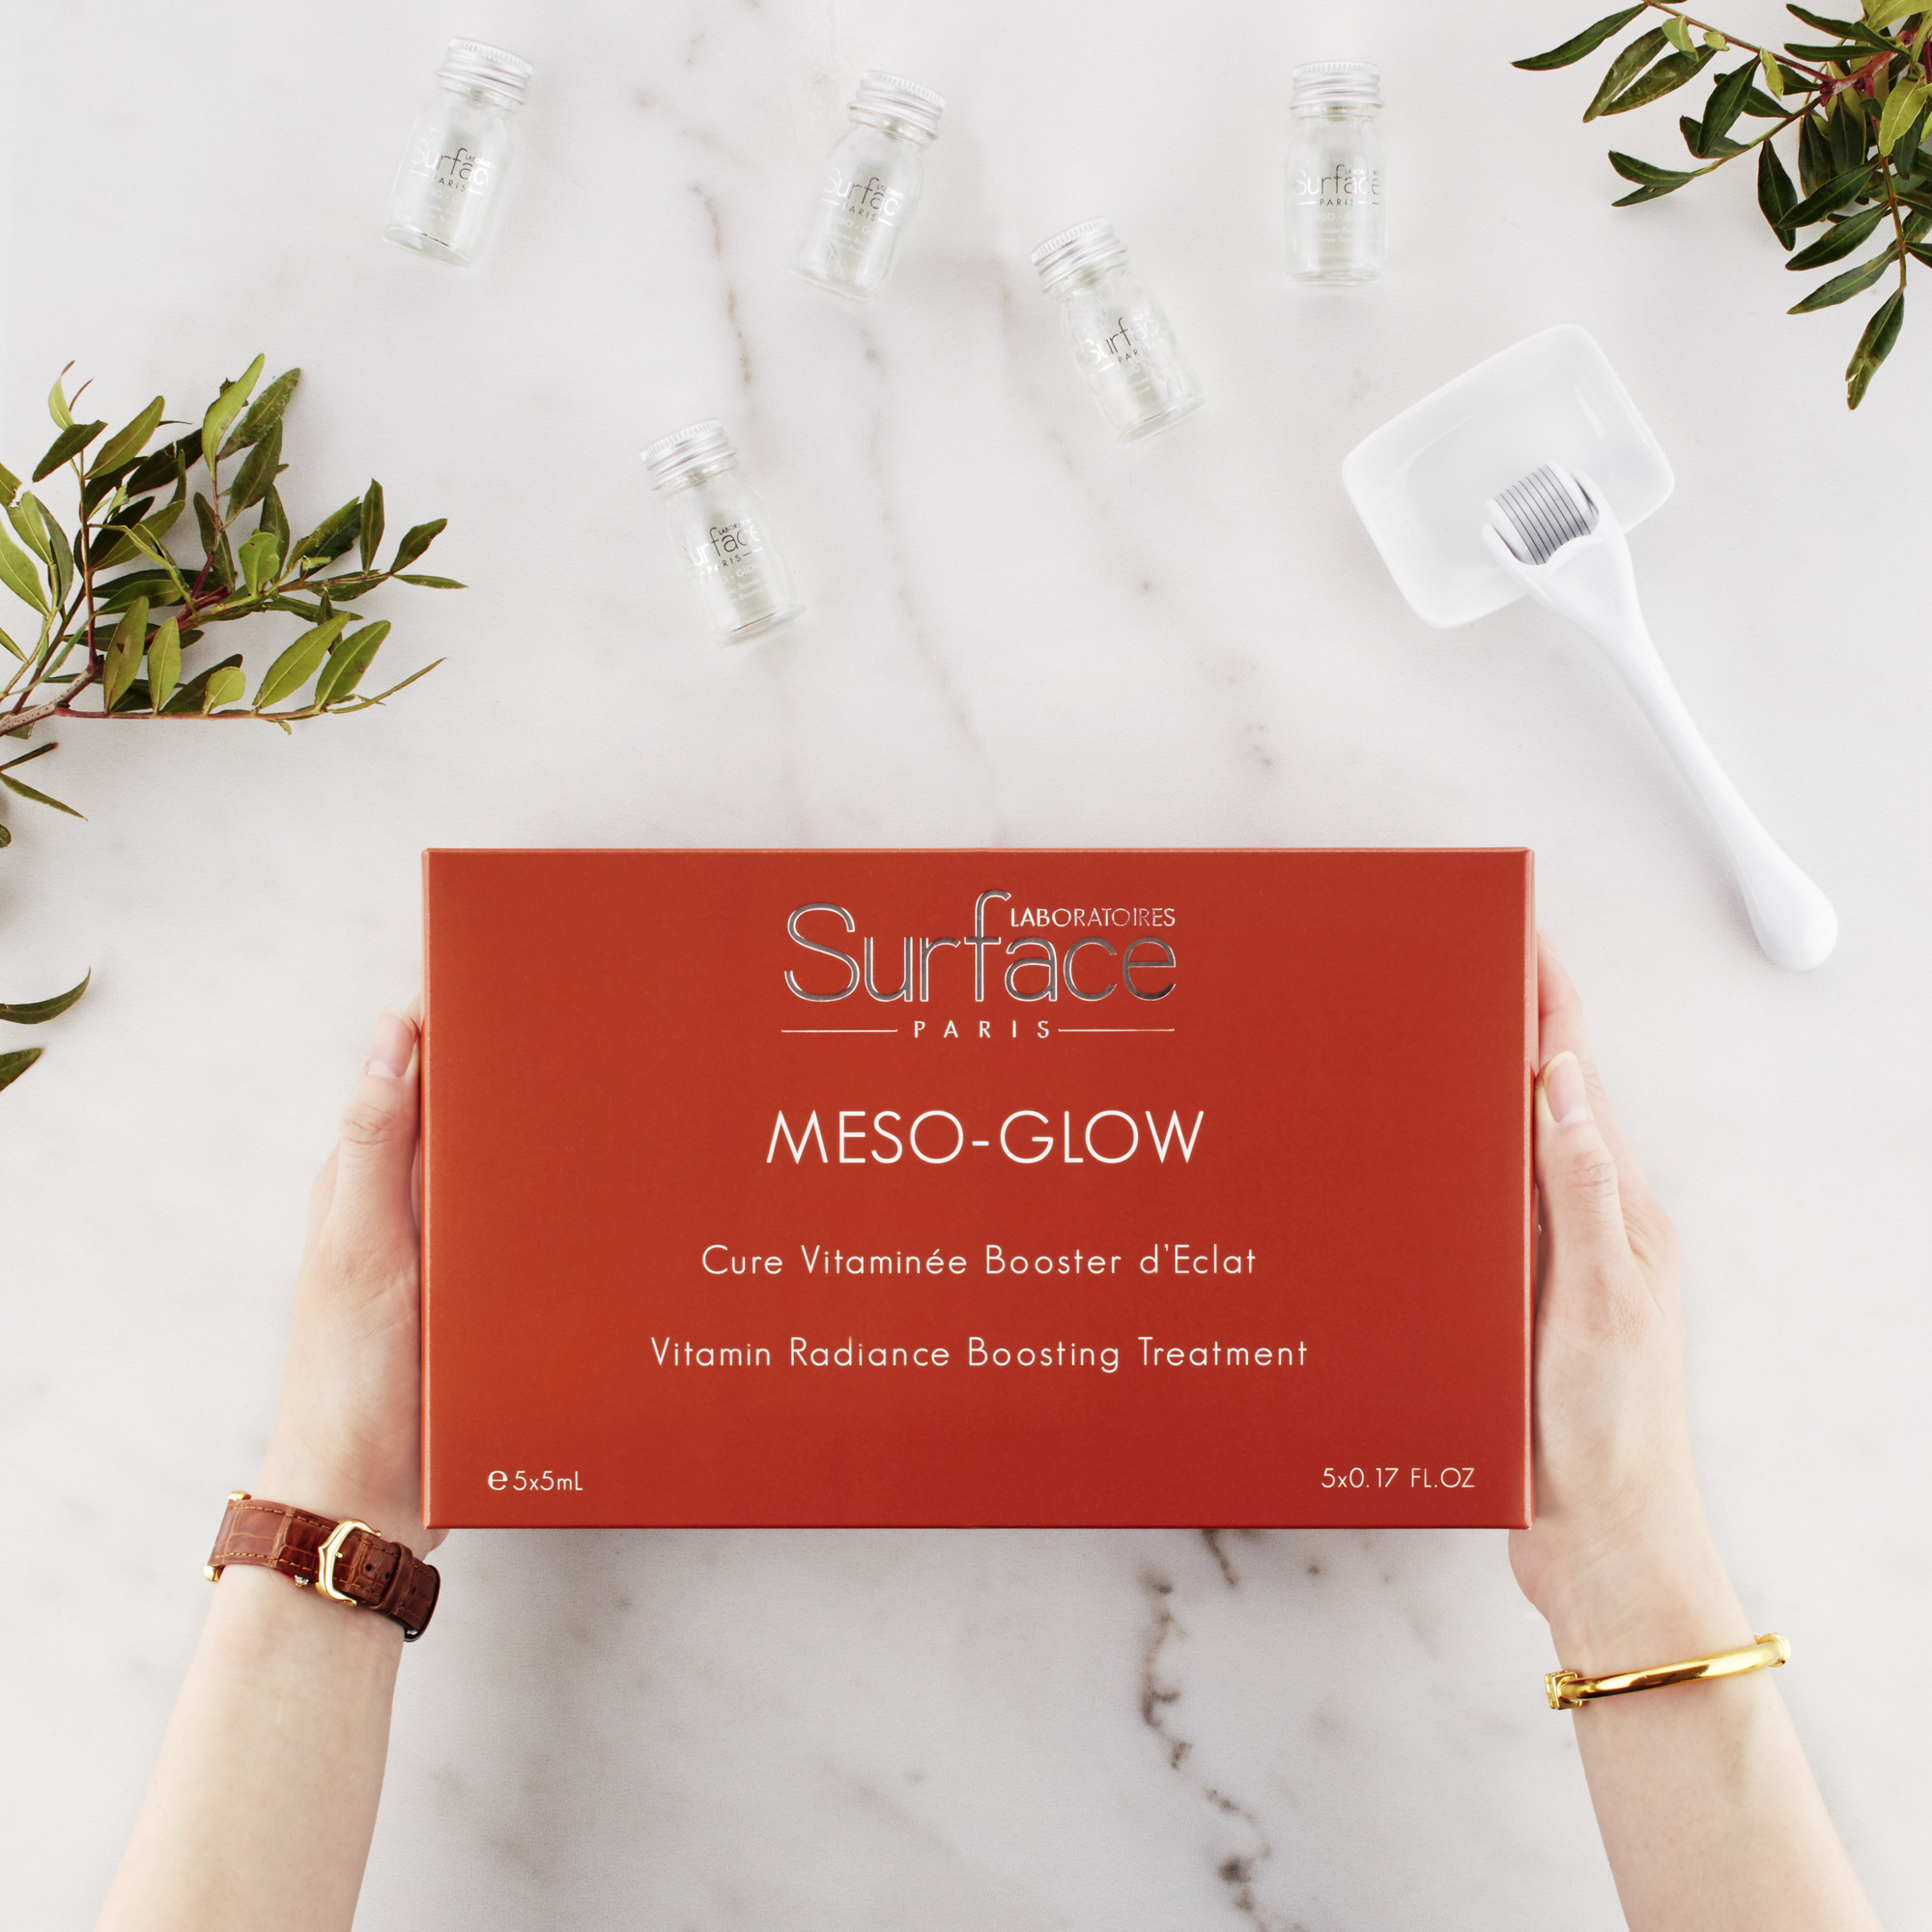 Meso Glow Surface Paris At-Home Mesotherapy Treatment